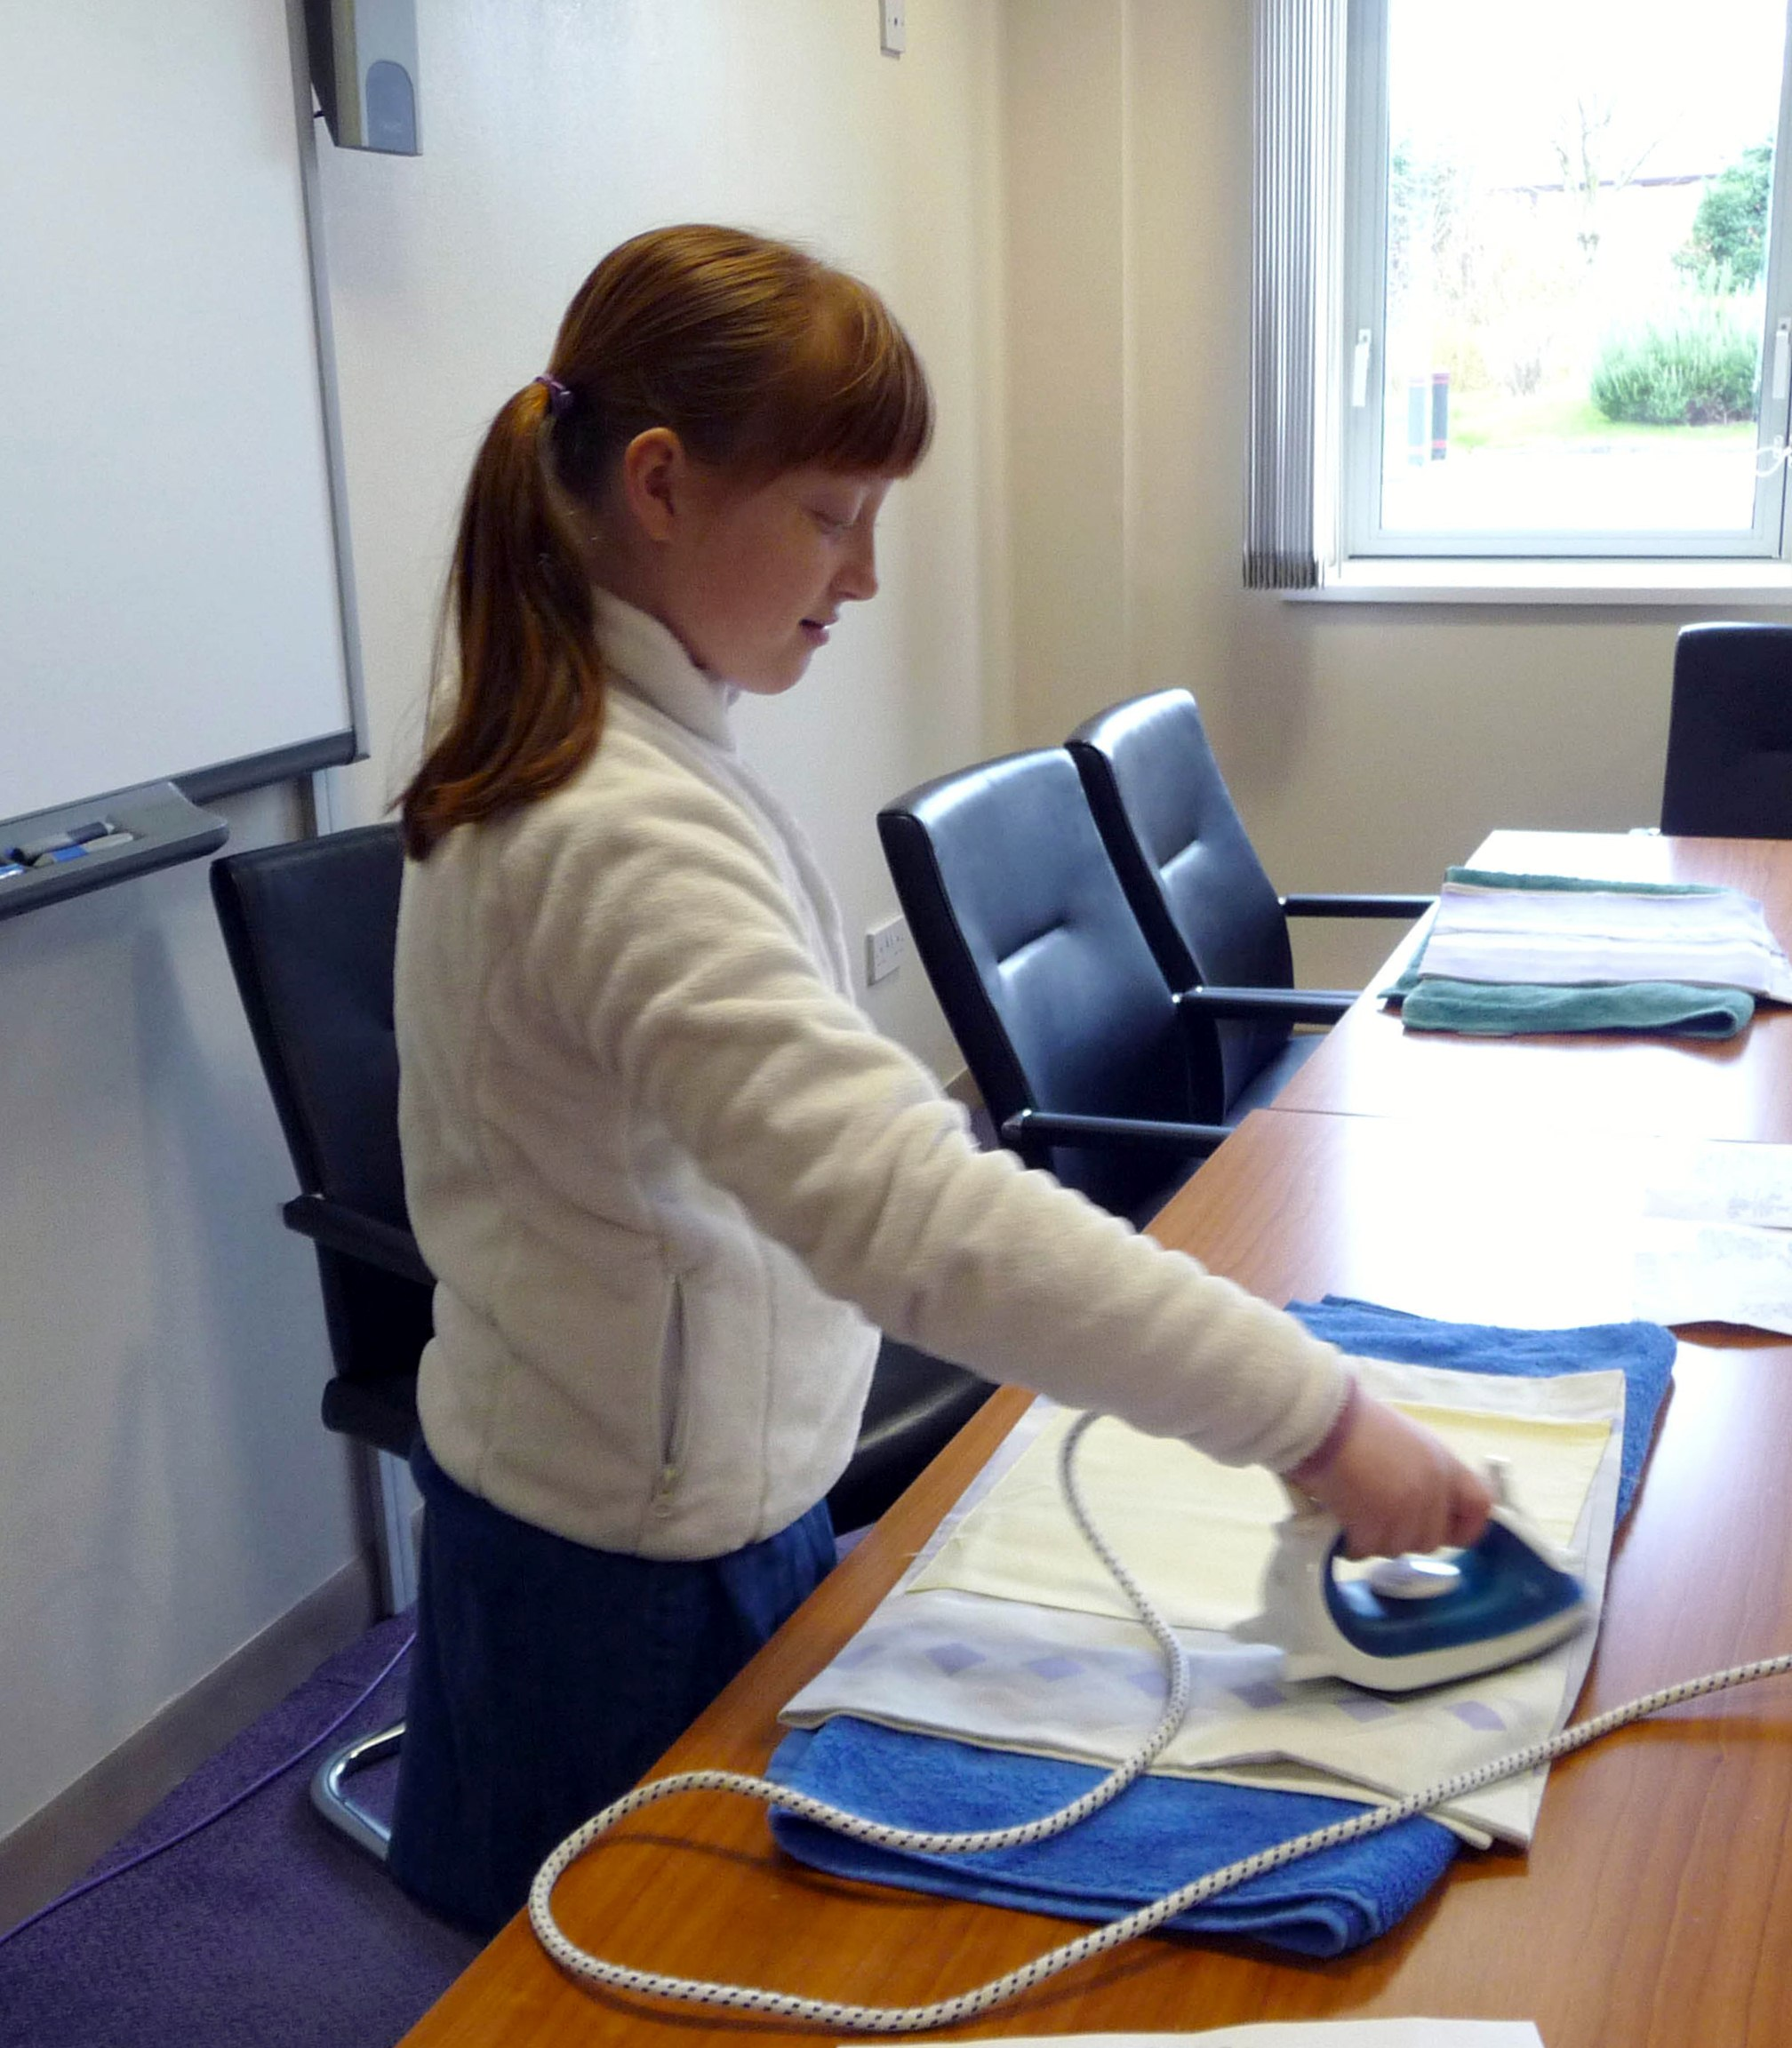 Merseyside YE- Ailis is ironing her embroidery fabric